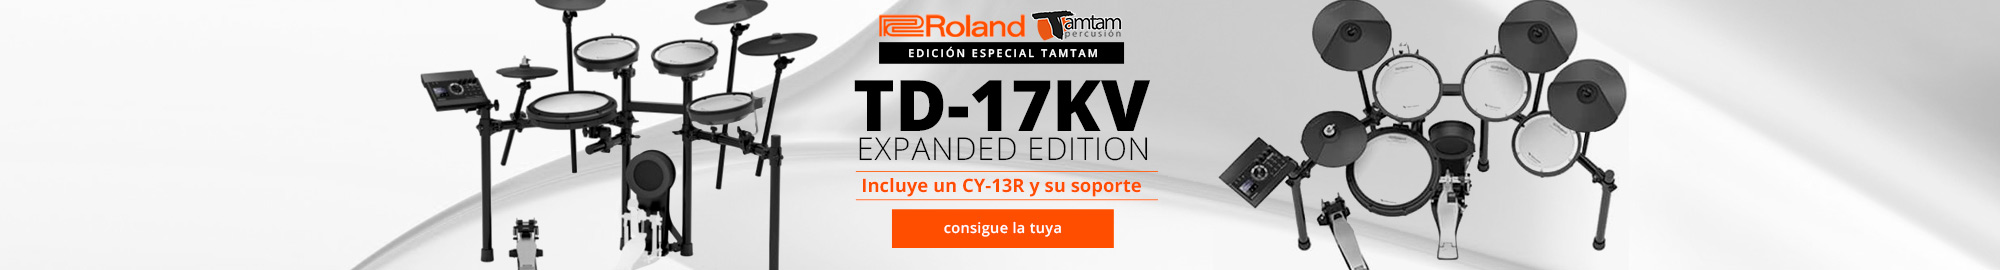 TD-17KV Expanded Edition